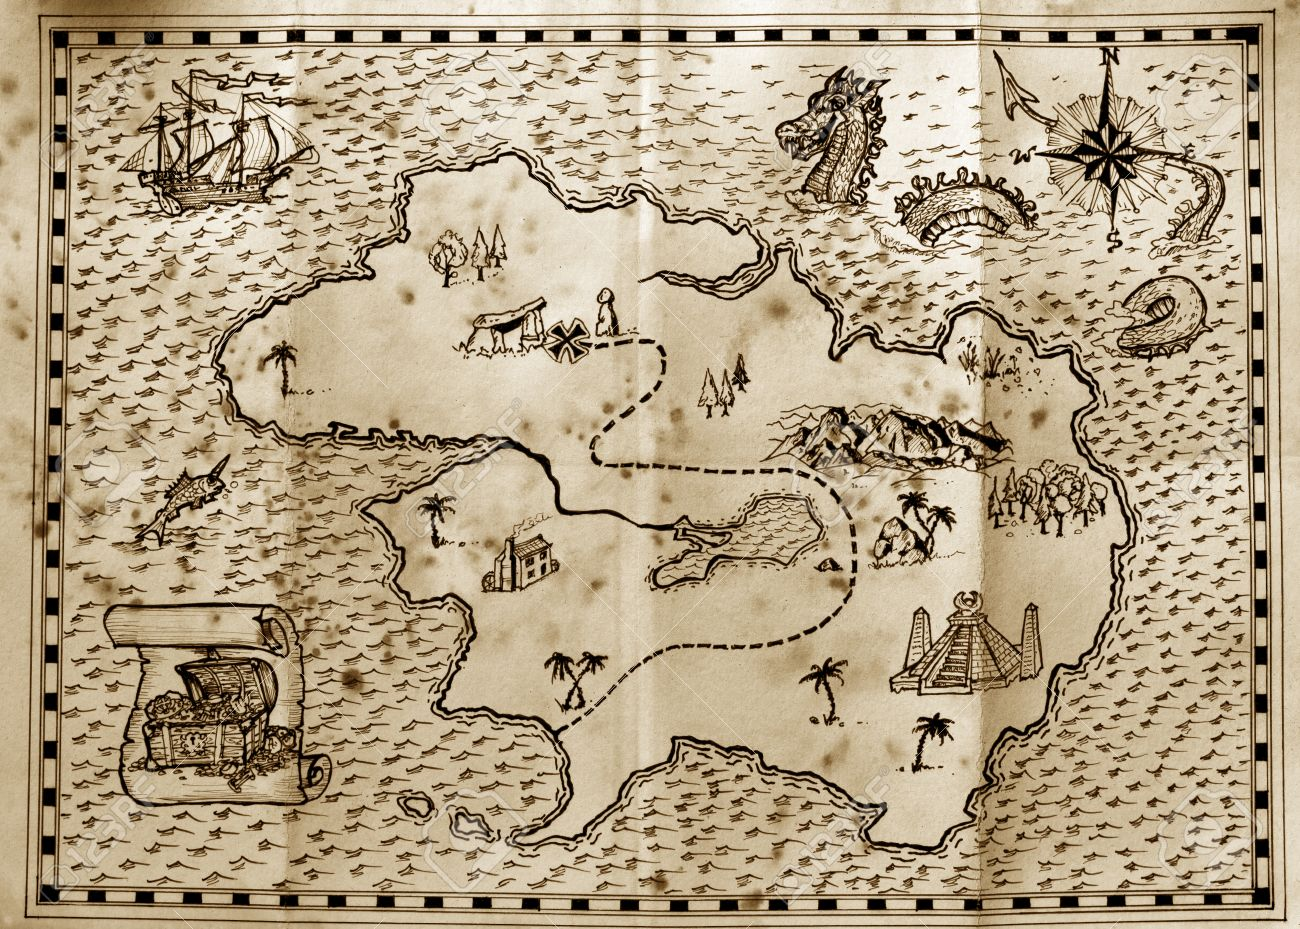 Old treasure map used by pirates to find hidden treasure